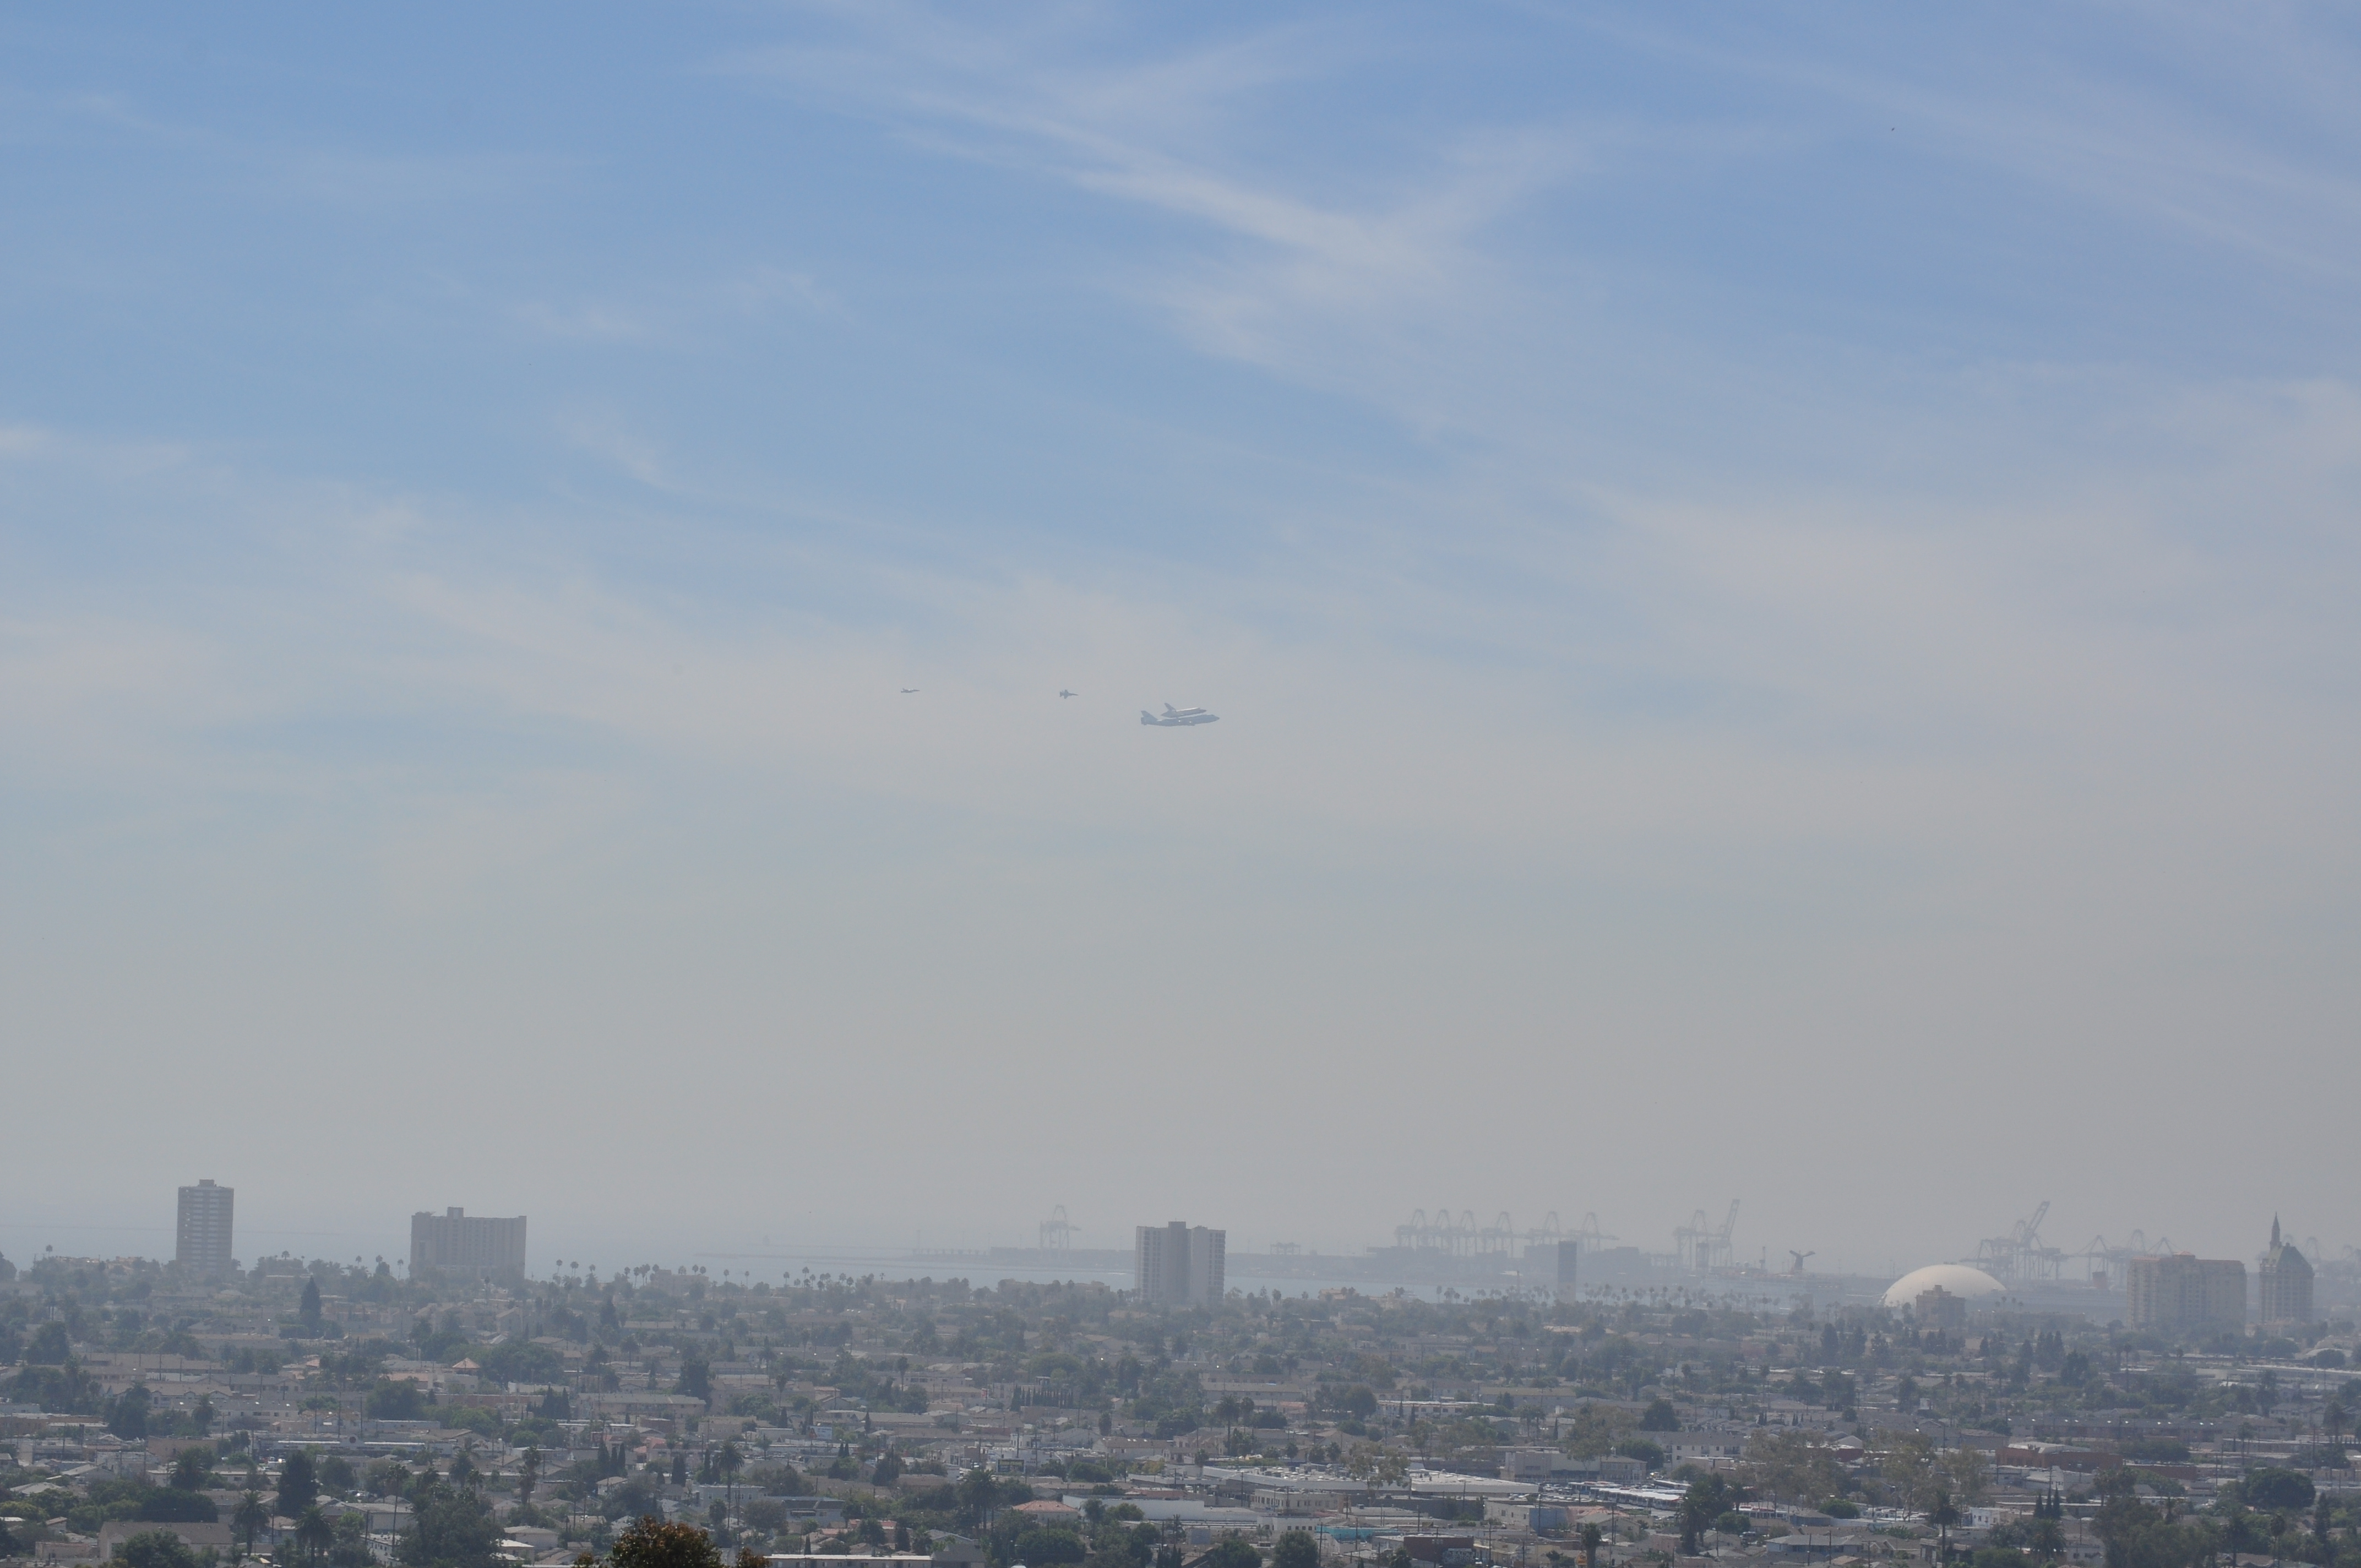 Shuttle Endeavour Over Long Beach, Calif.